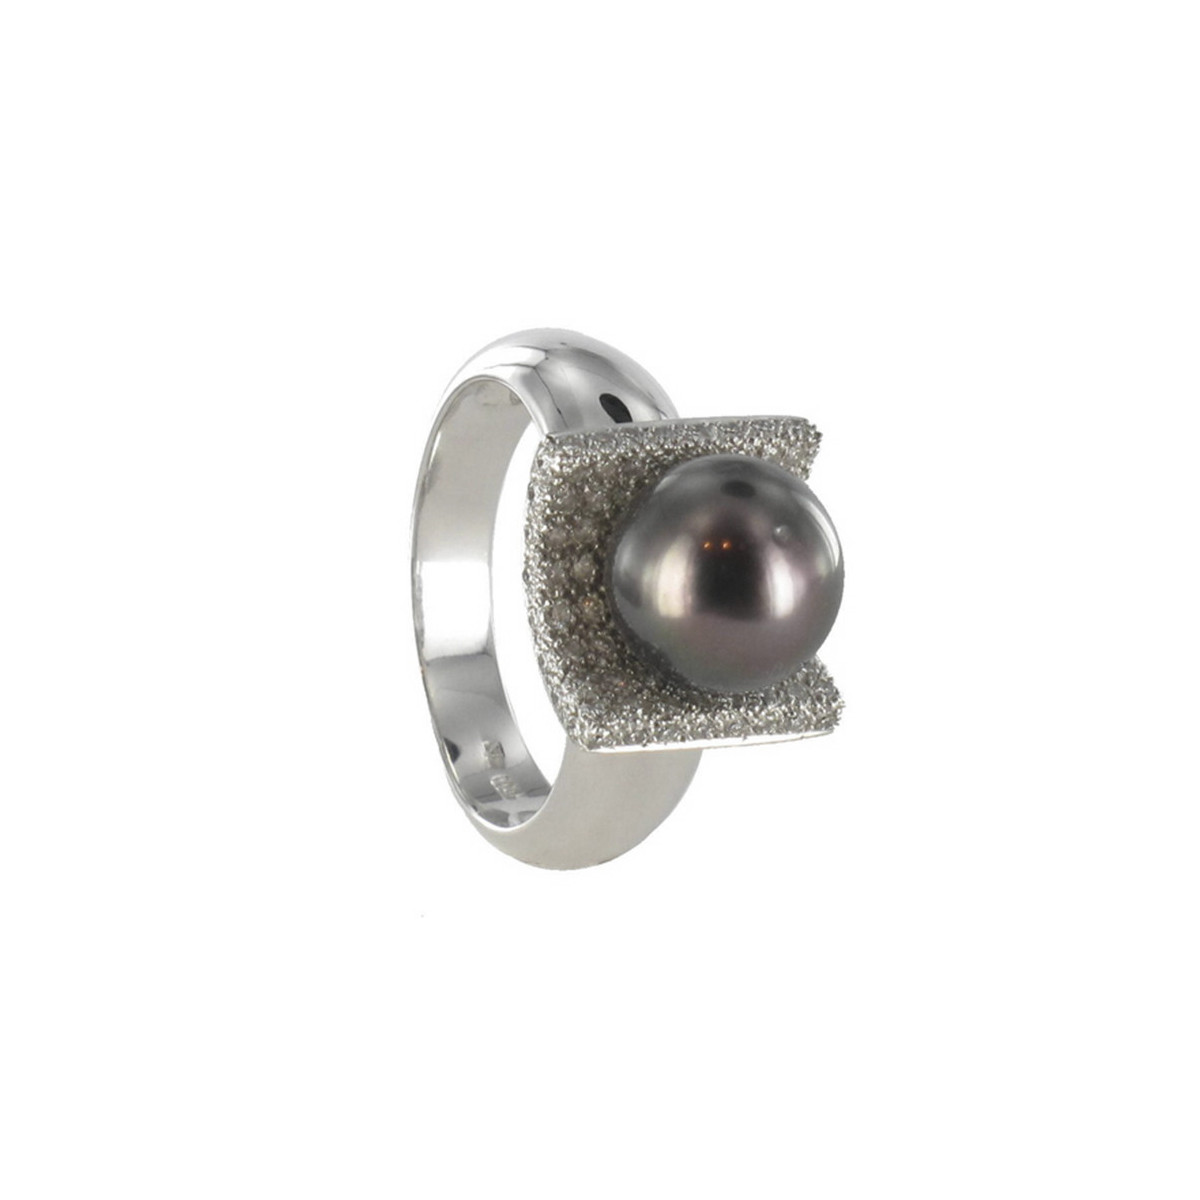 GOLD PEARL AND DIAMONDS RING